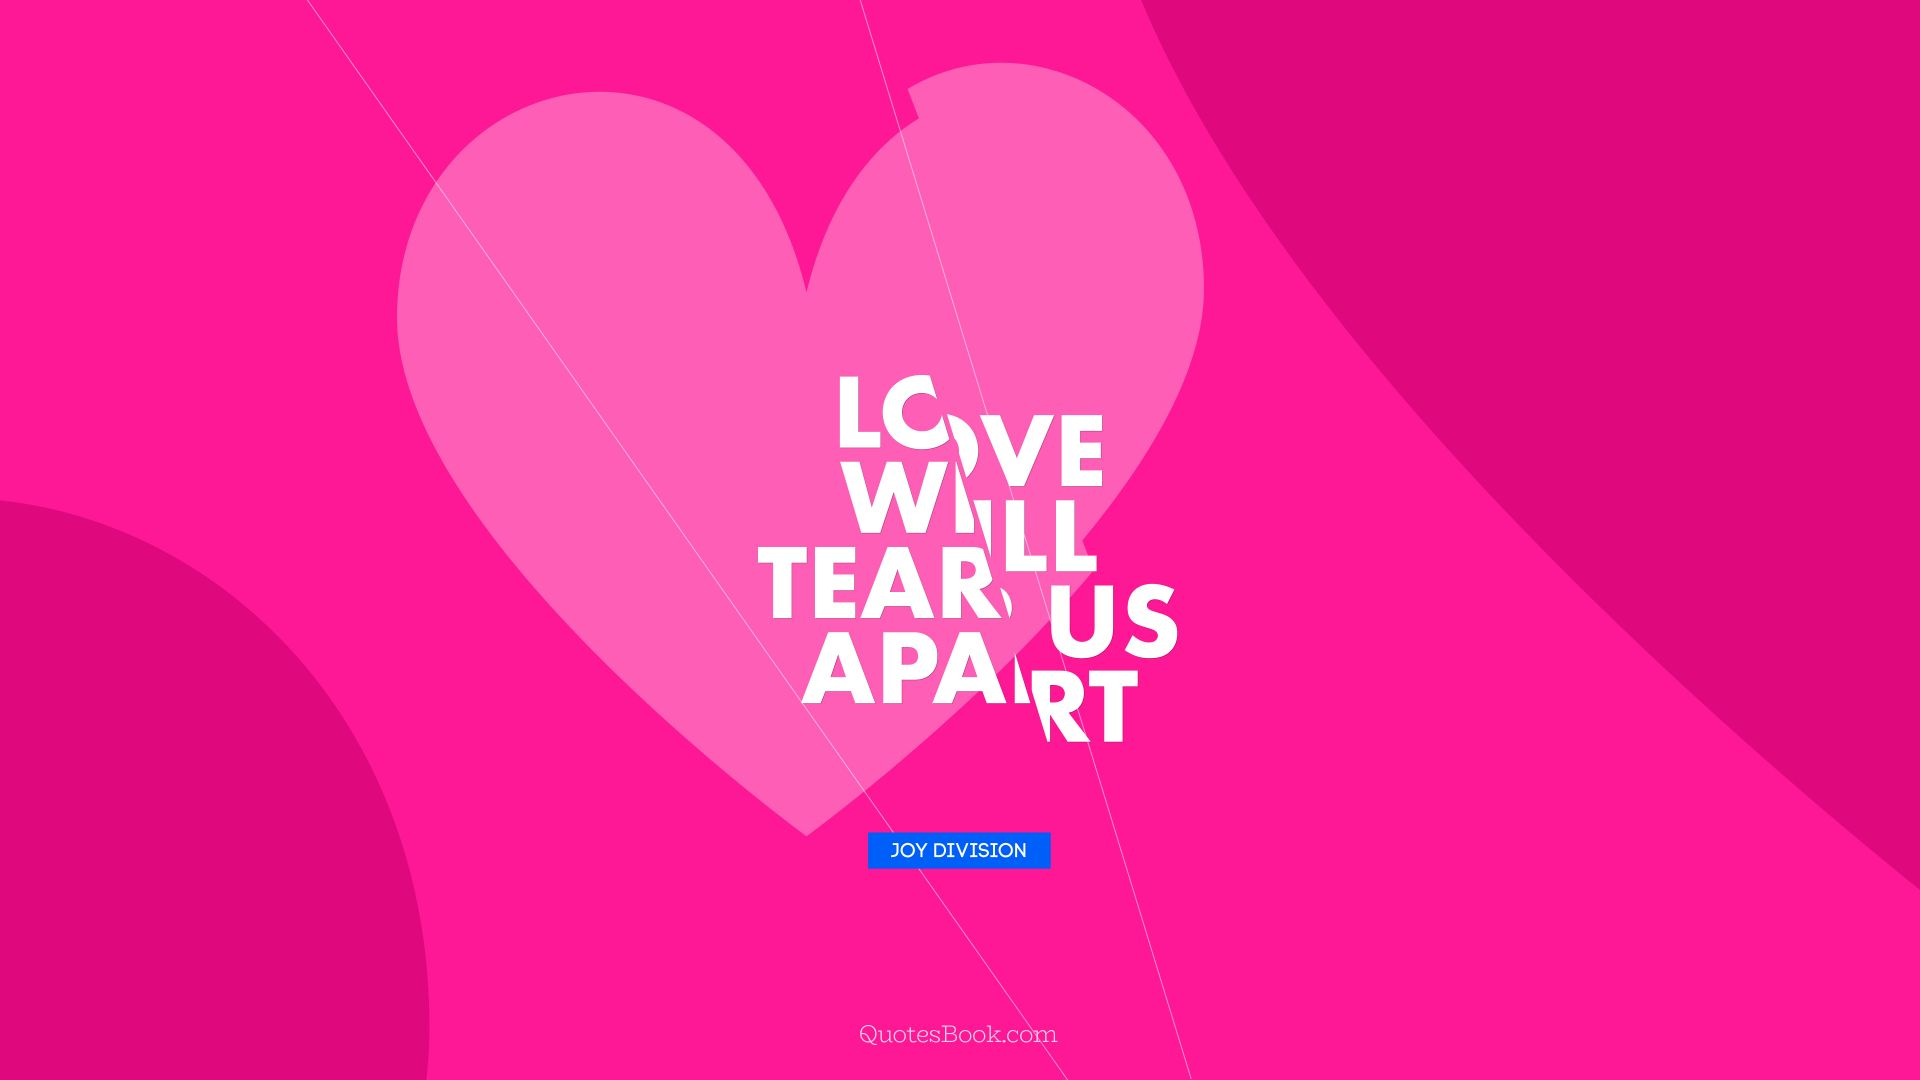 Love will tear us apart. - Quote by Joy Division